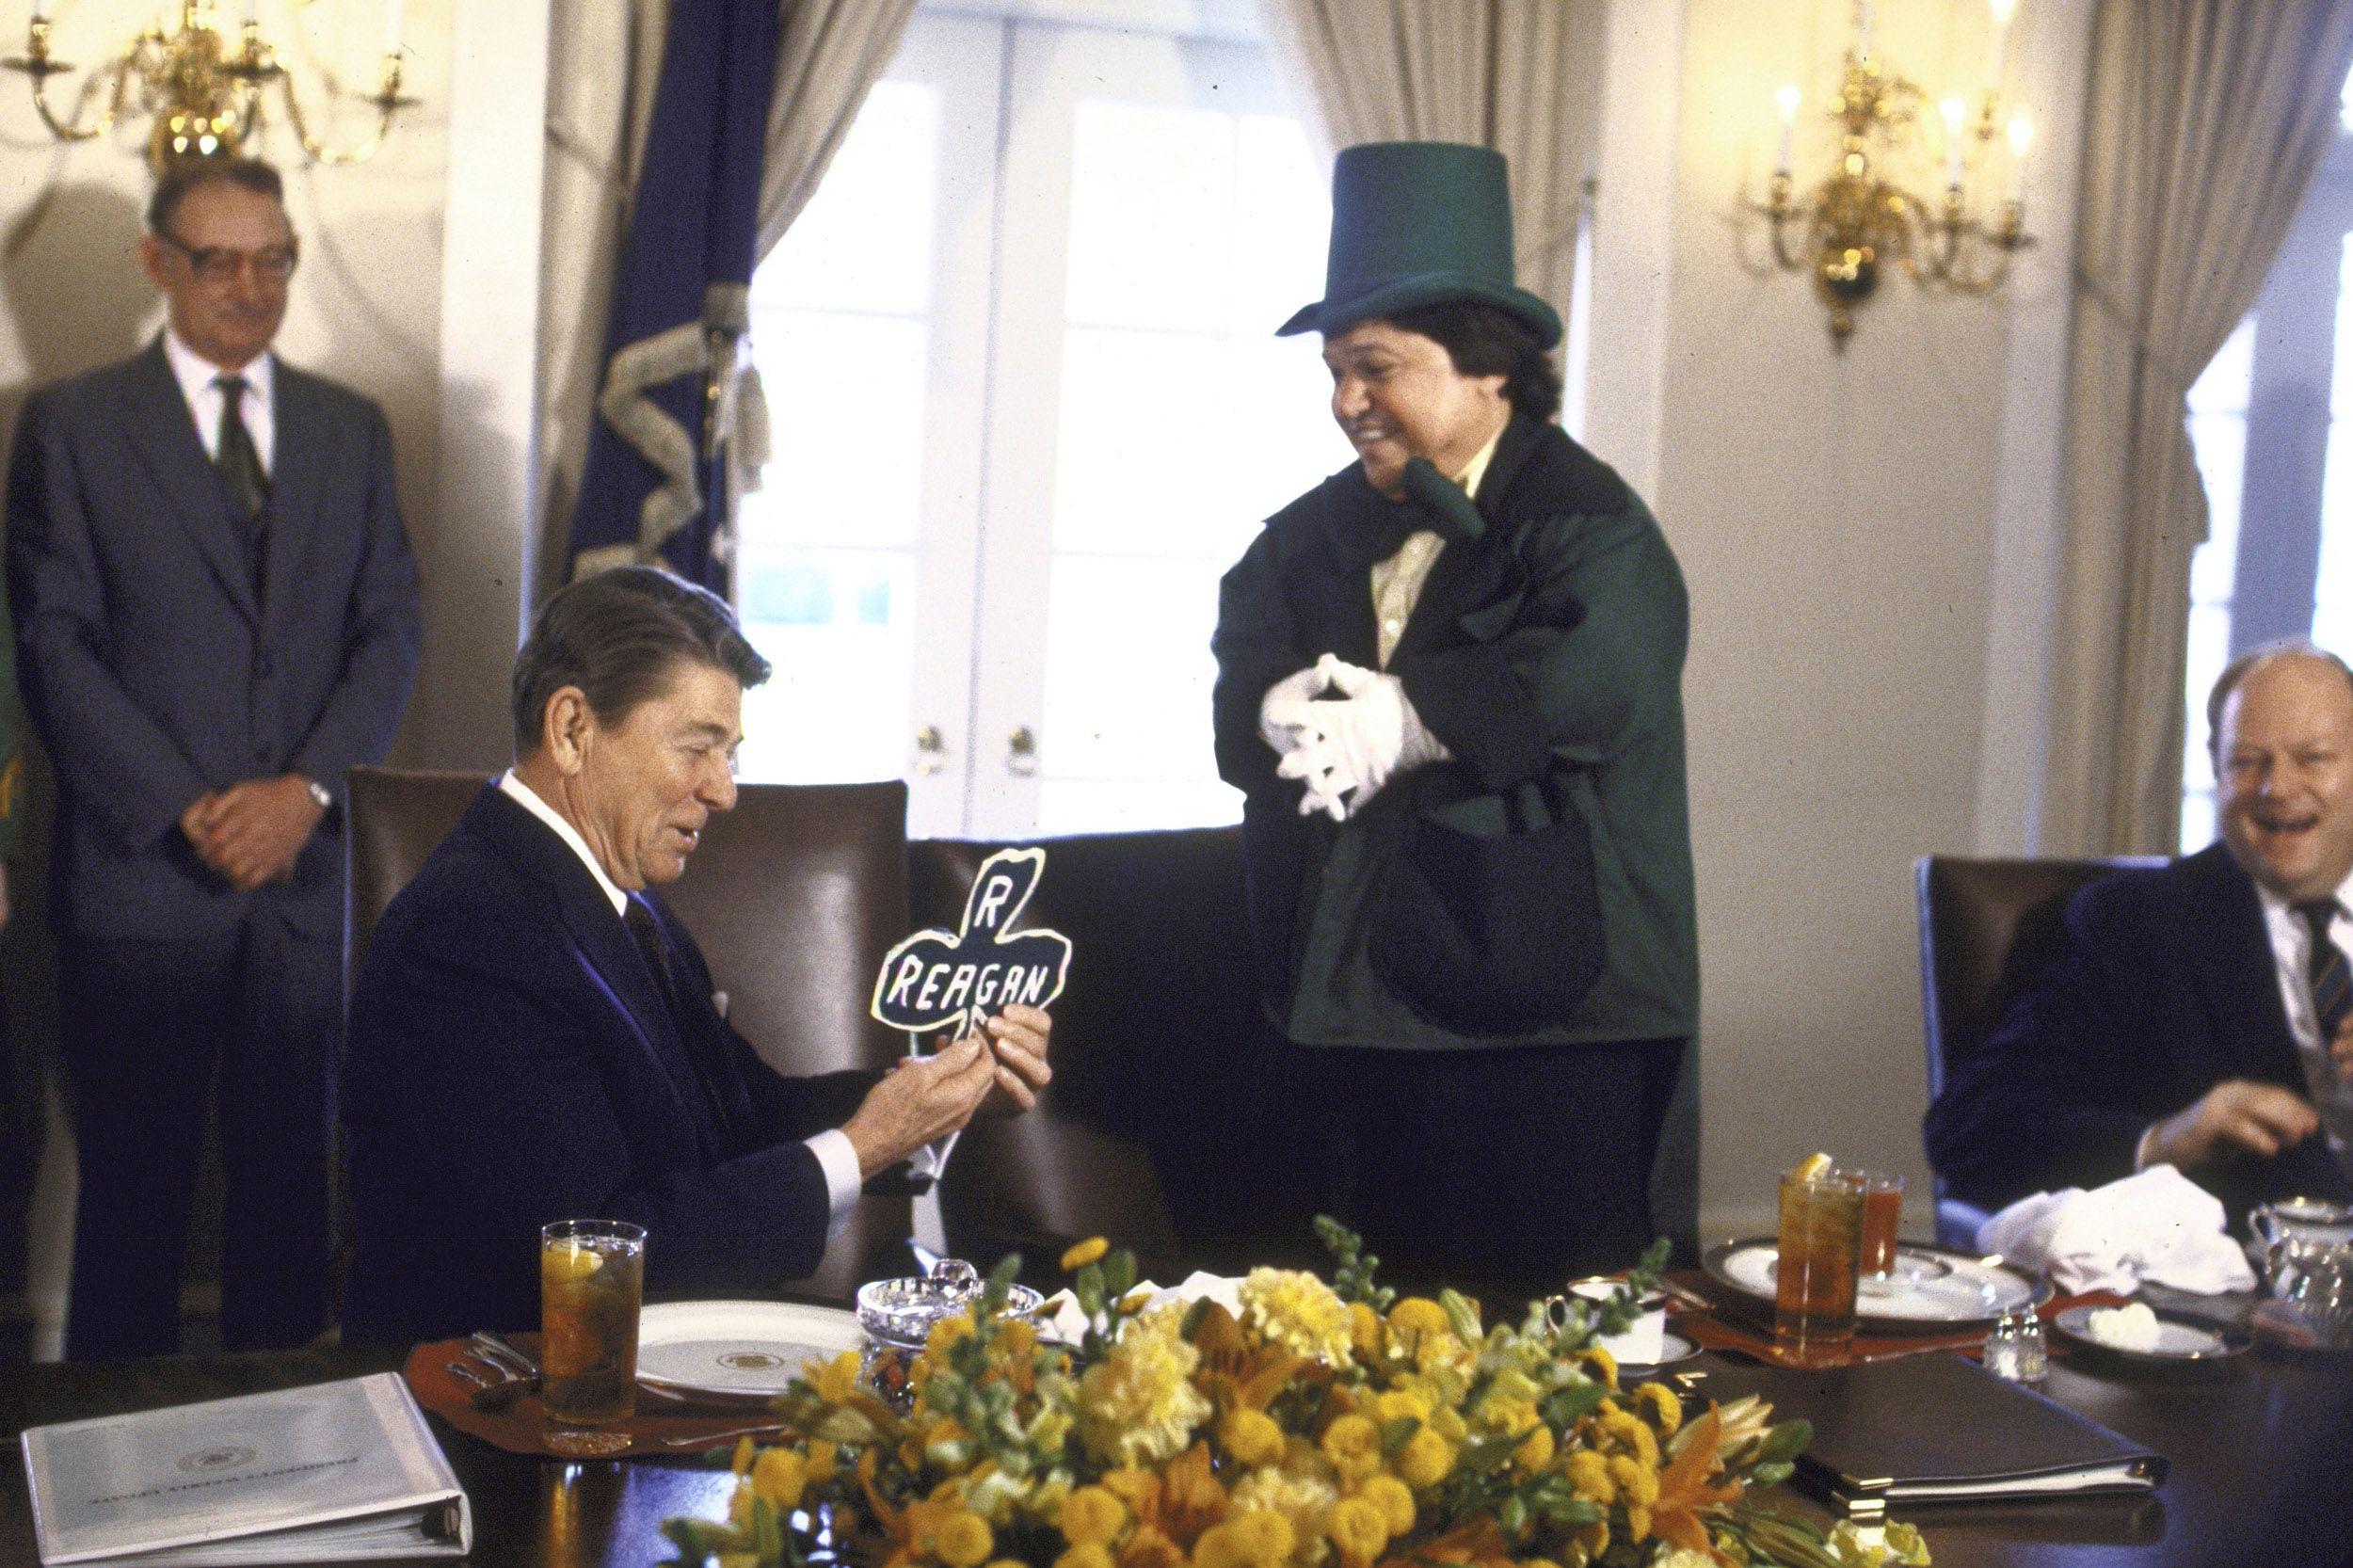 A leprechaun presents President Reagan with a personalized shamrock on St. Patrick's Day at the White House in 1986.